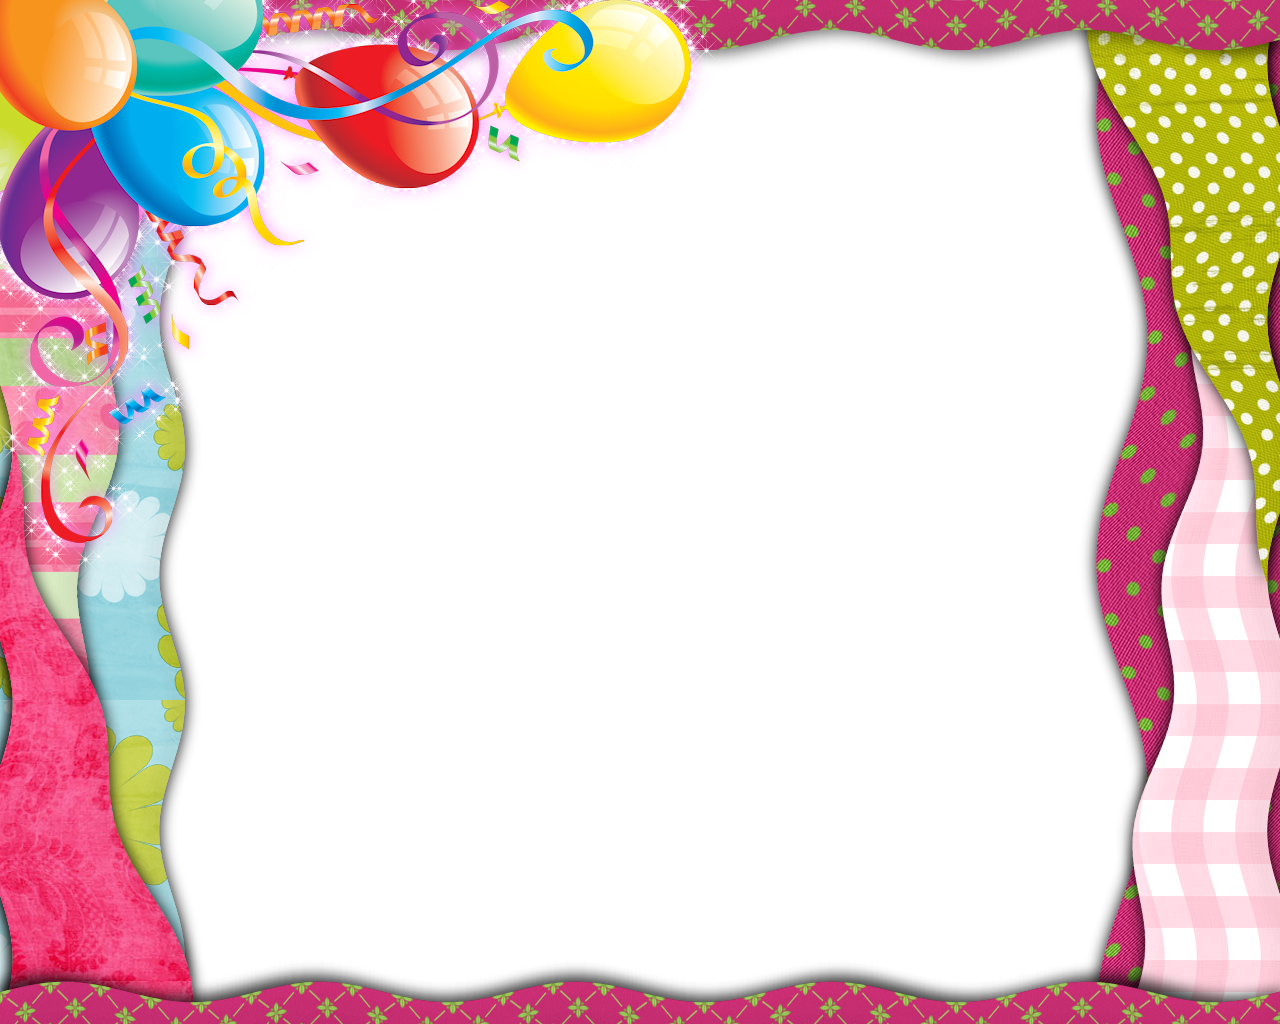 birthday border png google search clipart birthday maxine clipart summer maxine clipart 60th birthday